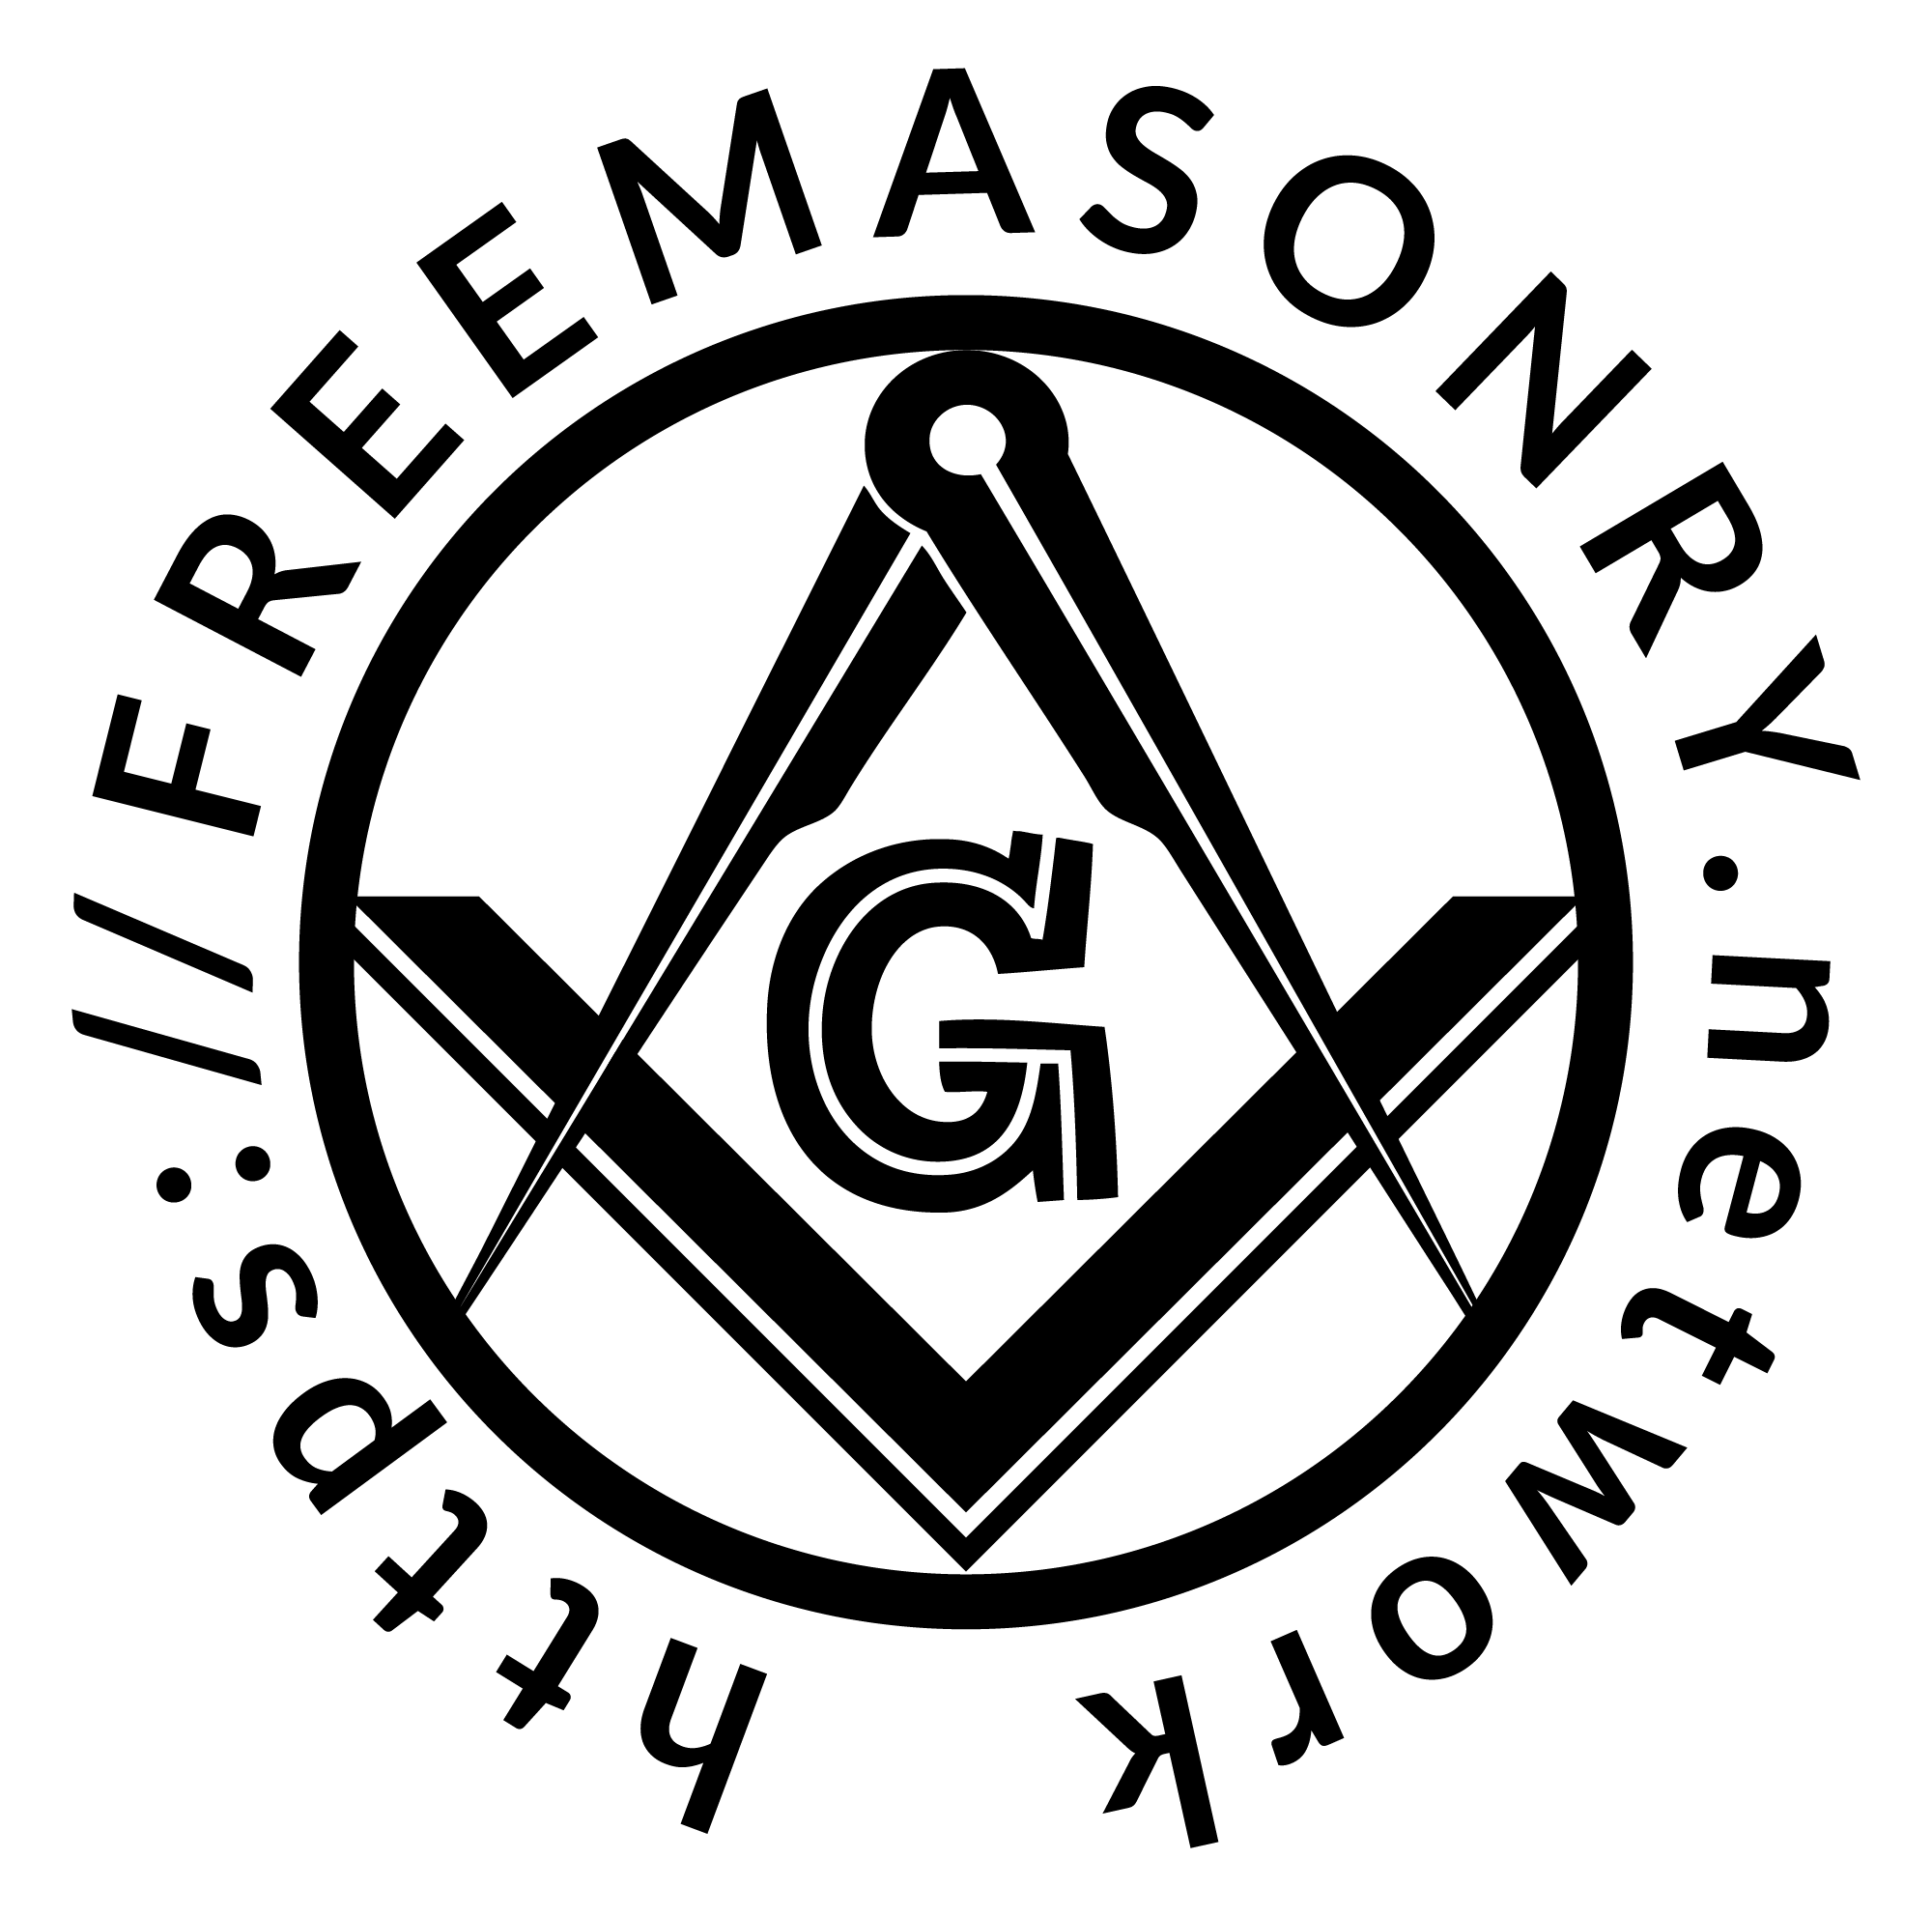 GRAND LODGE OF MARK MASTER MASONS OF QUEENSLAND